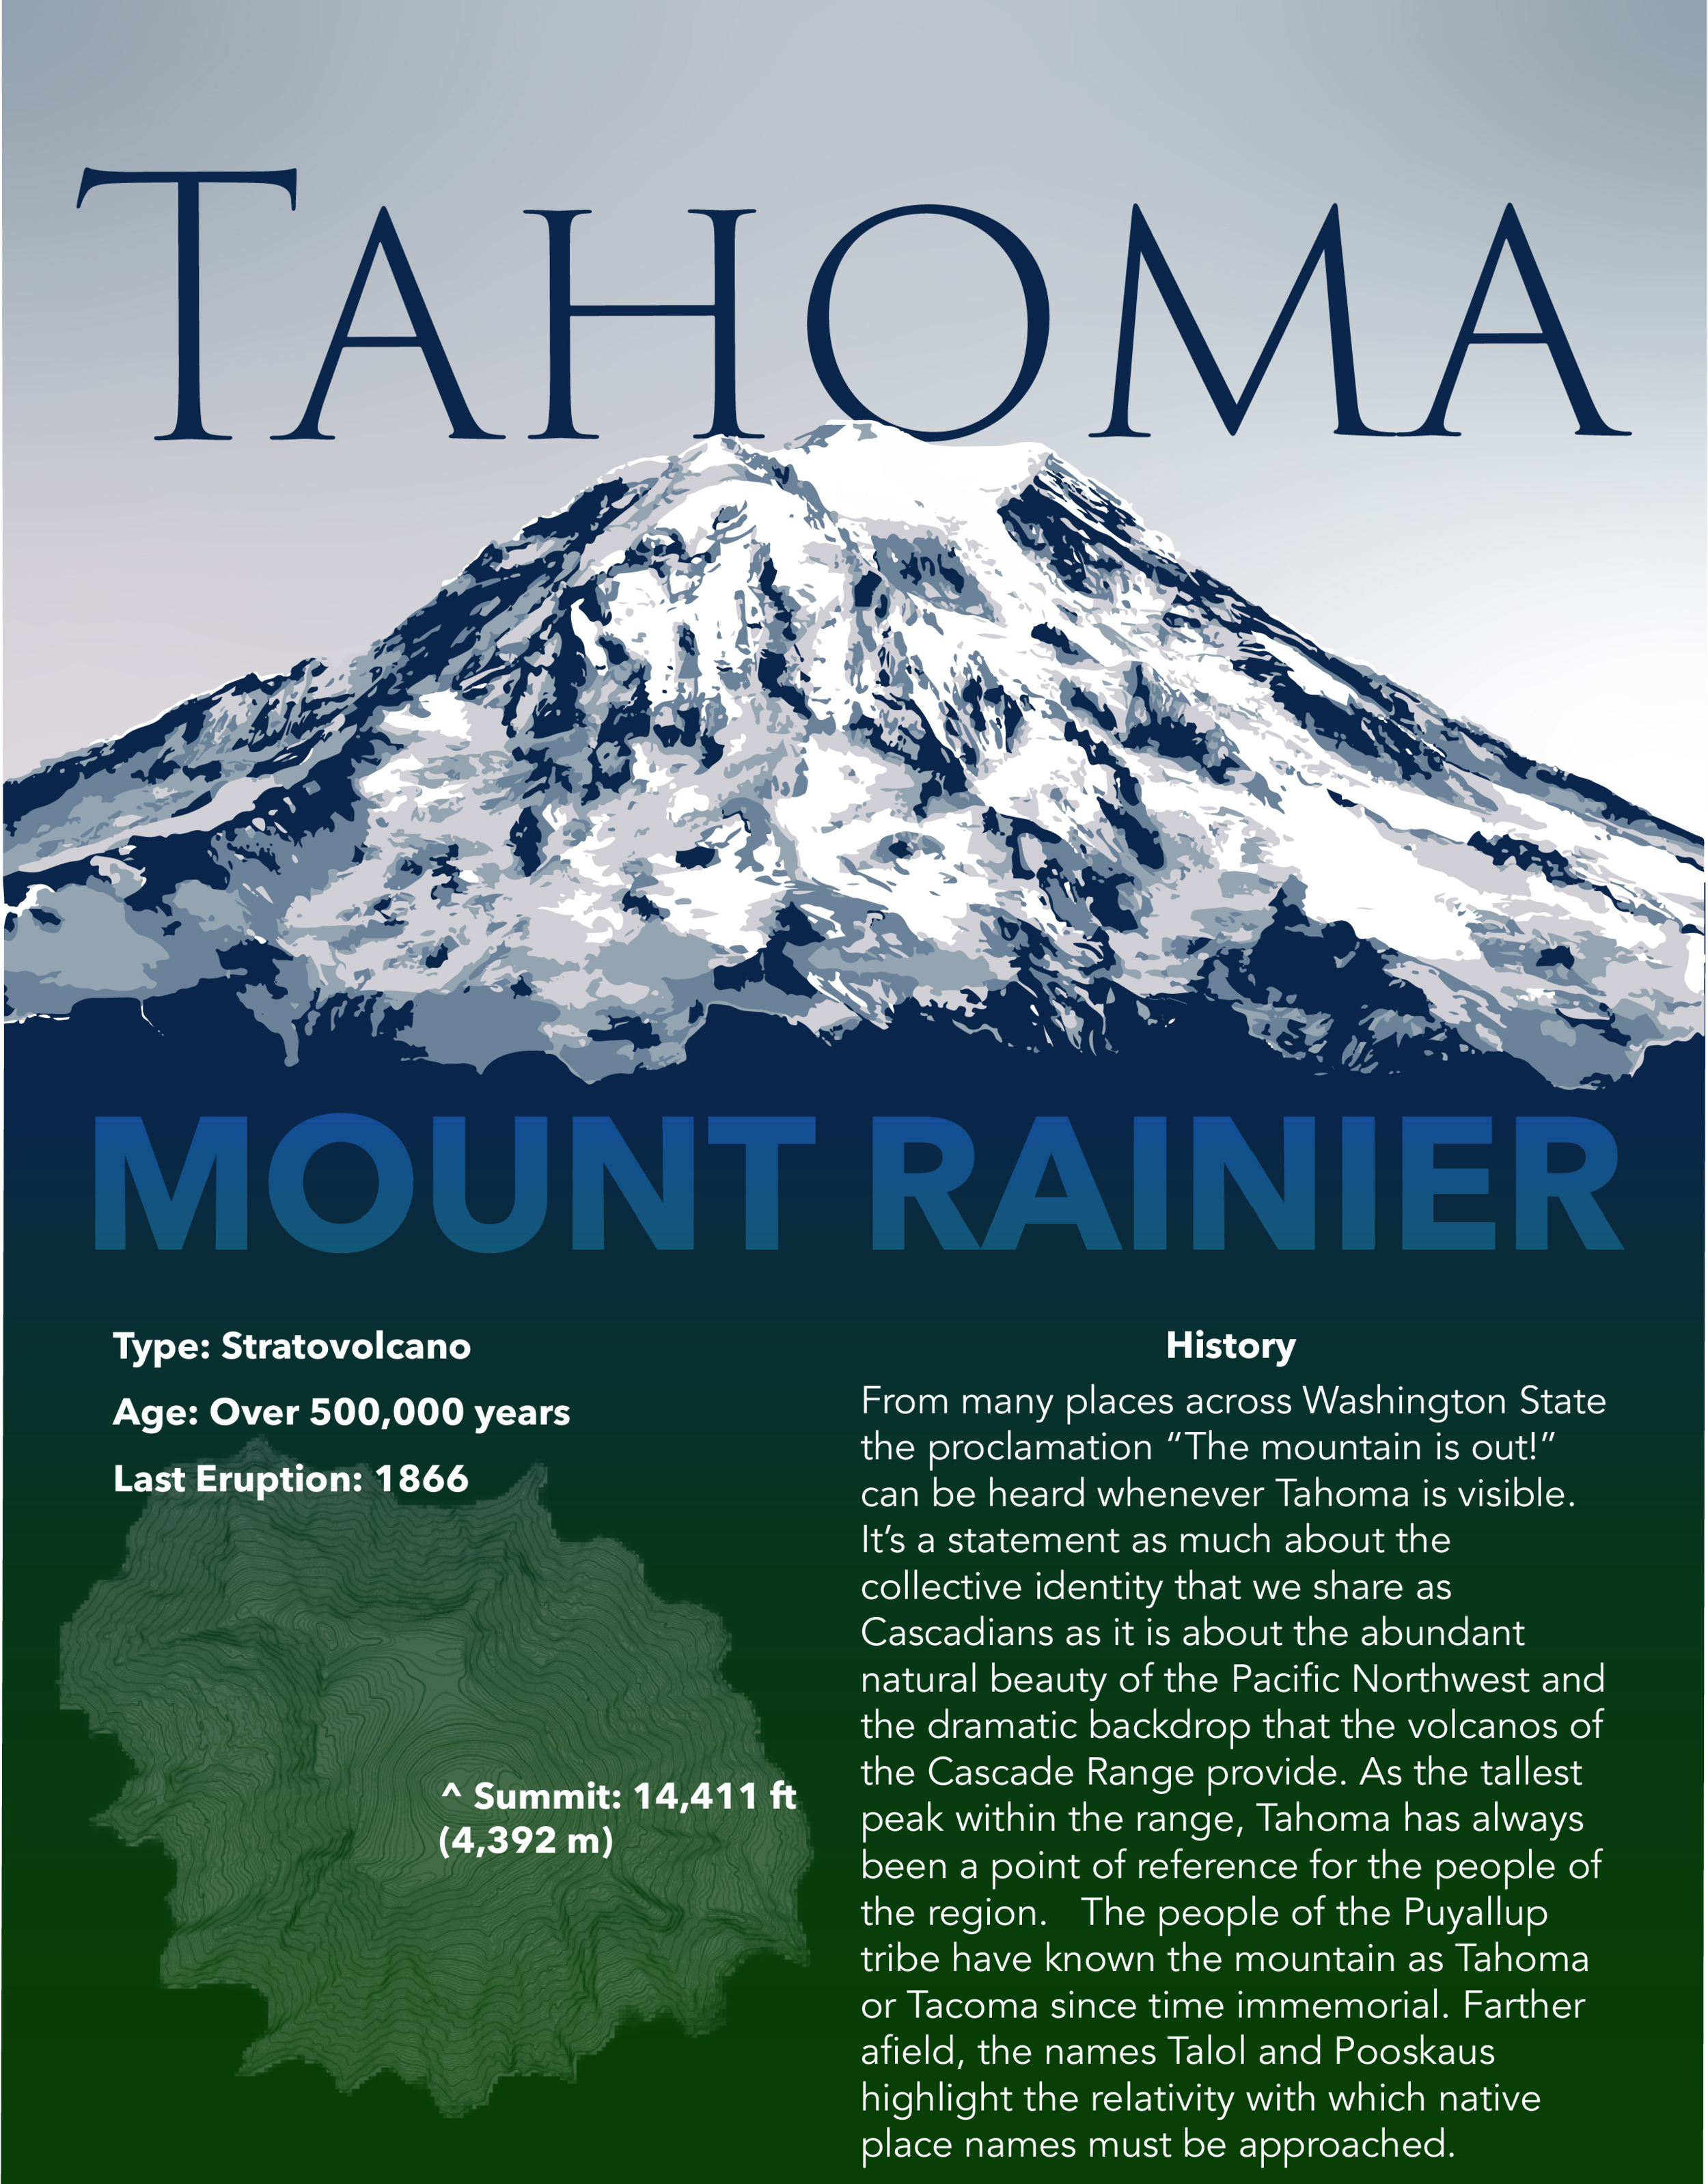 Second in a series of twelve posters recognizing and celebrating the native names of peaks and prominences in the Cascade Range.